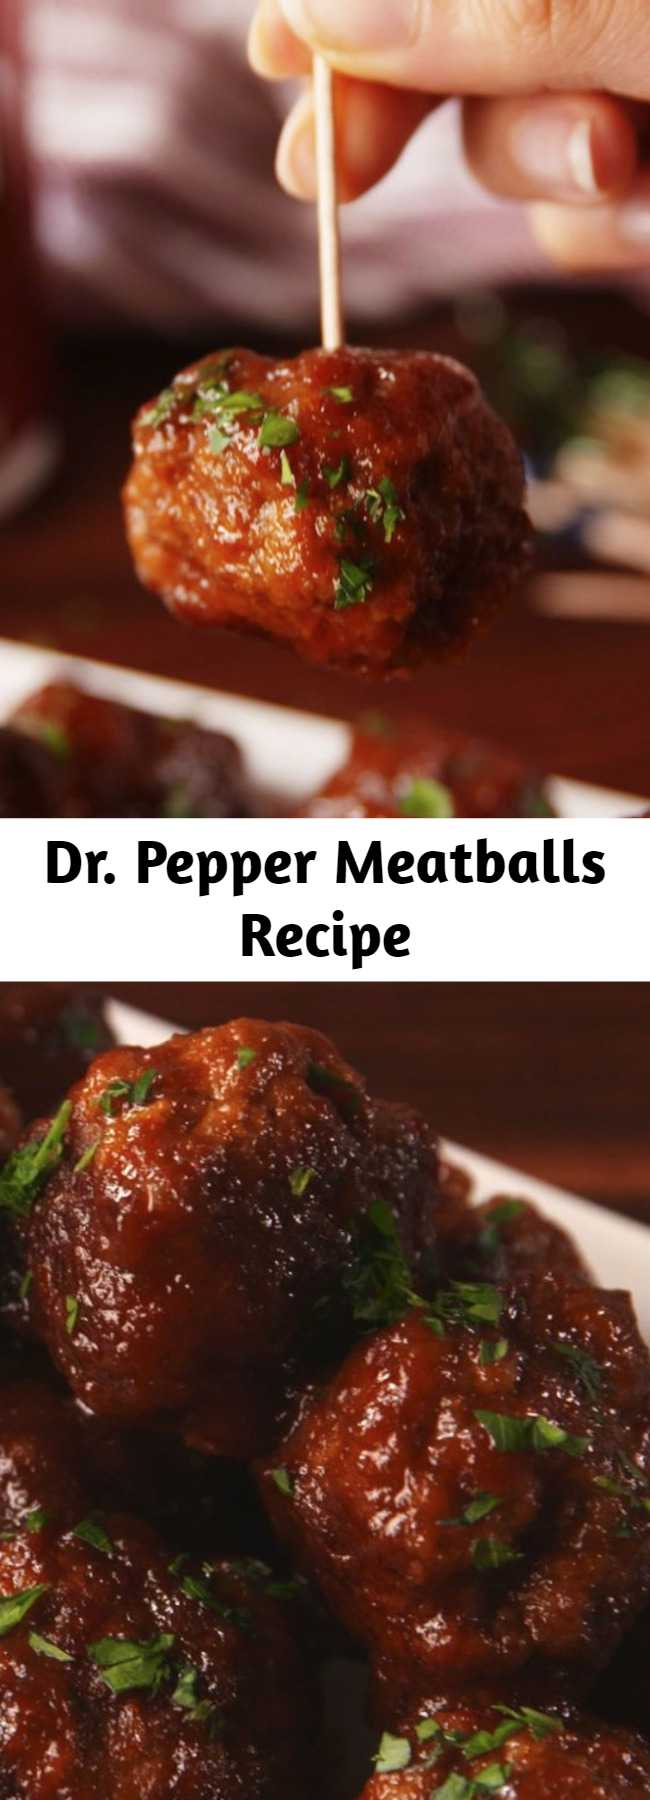 Dr. Pepper Meatballs Recipe - You'll be licking the sauce spoon, it's so good.